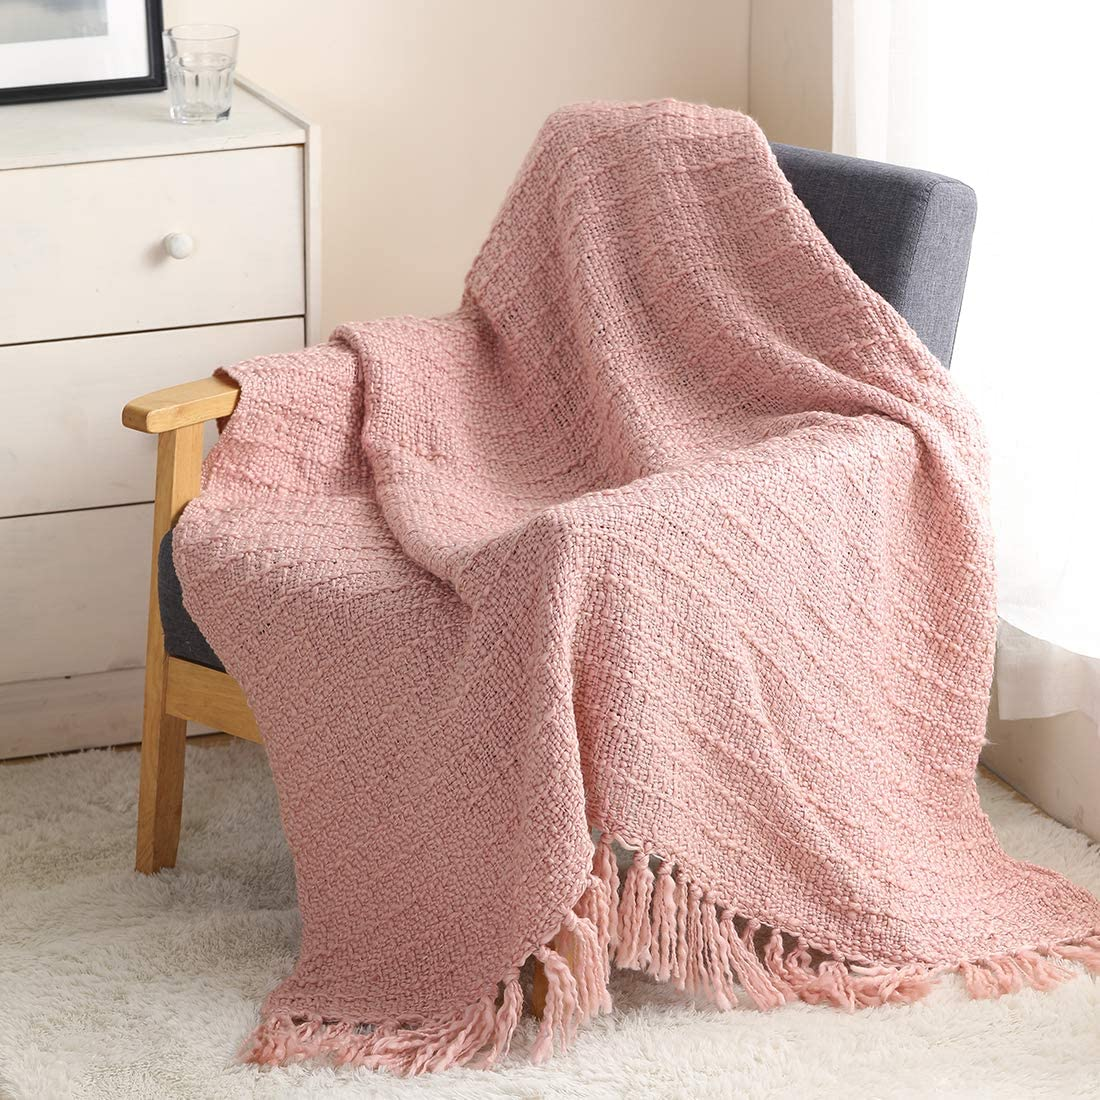 ZIGGUO Thick Chunky Pink Knitted Throw Blanket for Couch Chair Sofa Bed, Chic Boho Style Textured Basket Weave Pattern Blanket with Decorative Fringe, 50